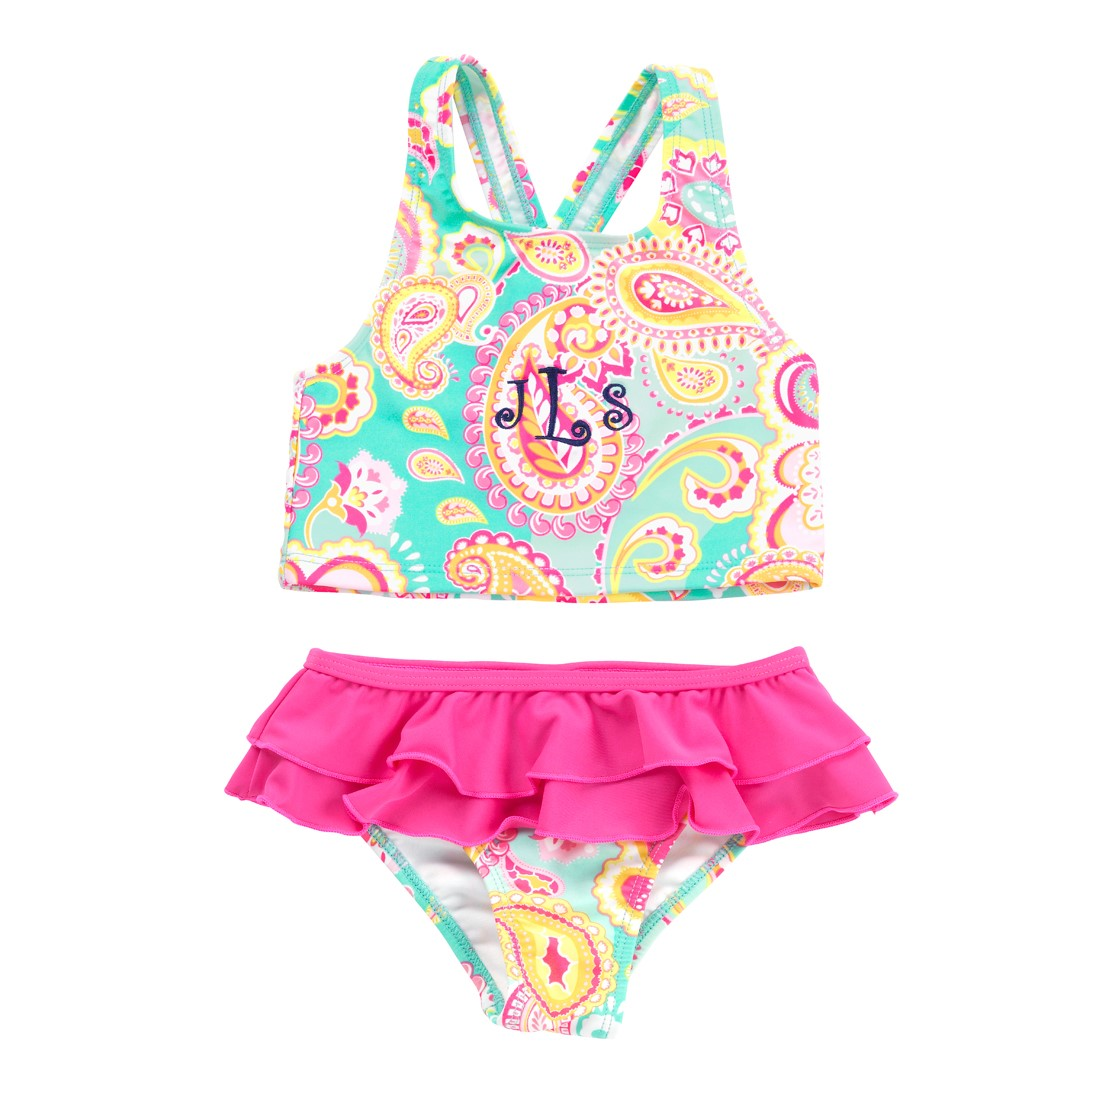 e294149b0ef9f Personalized Paisley Swim Suit for Girls - Monogrammed Bathing Suit ...